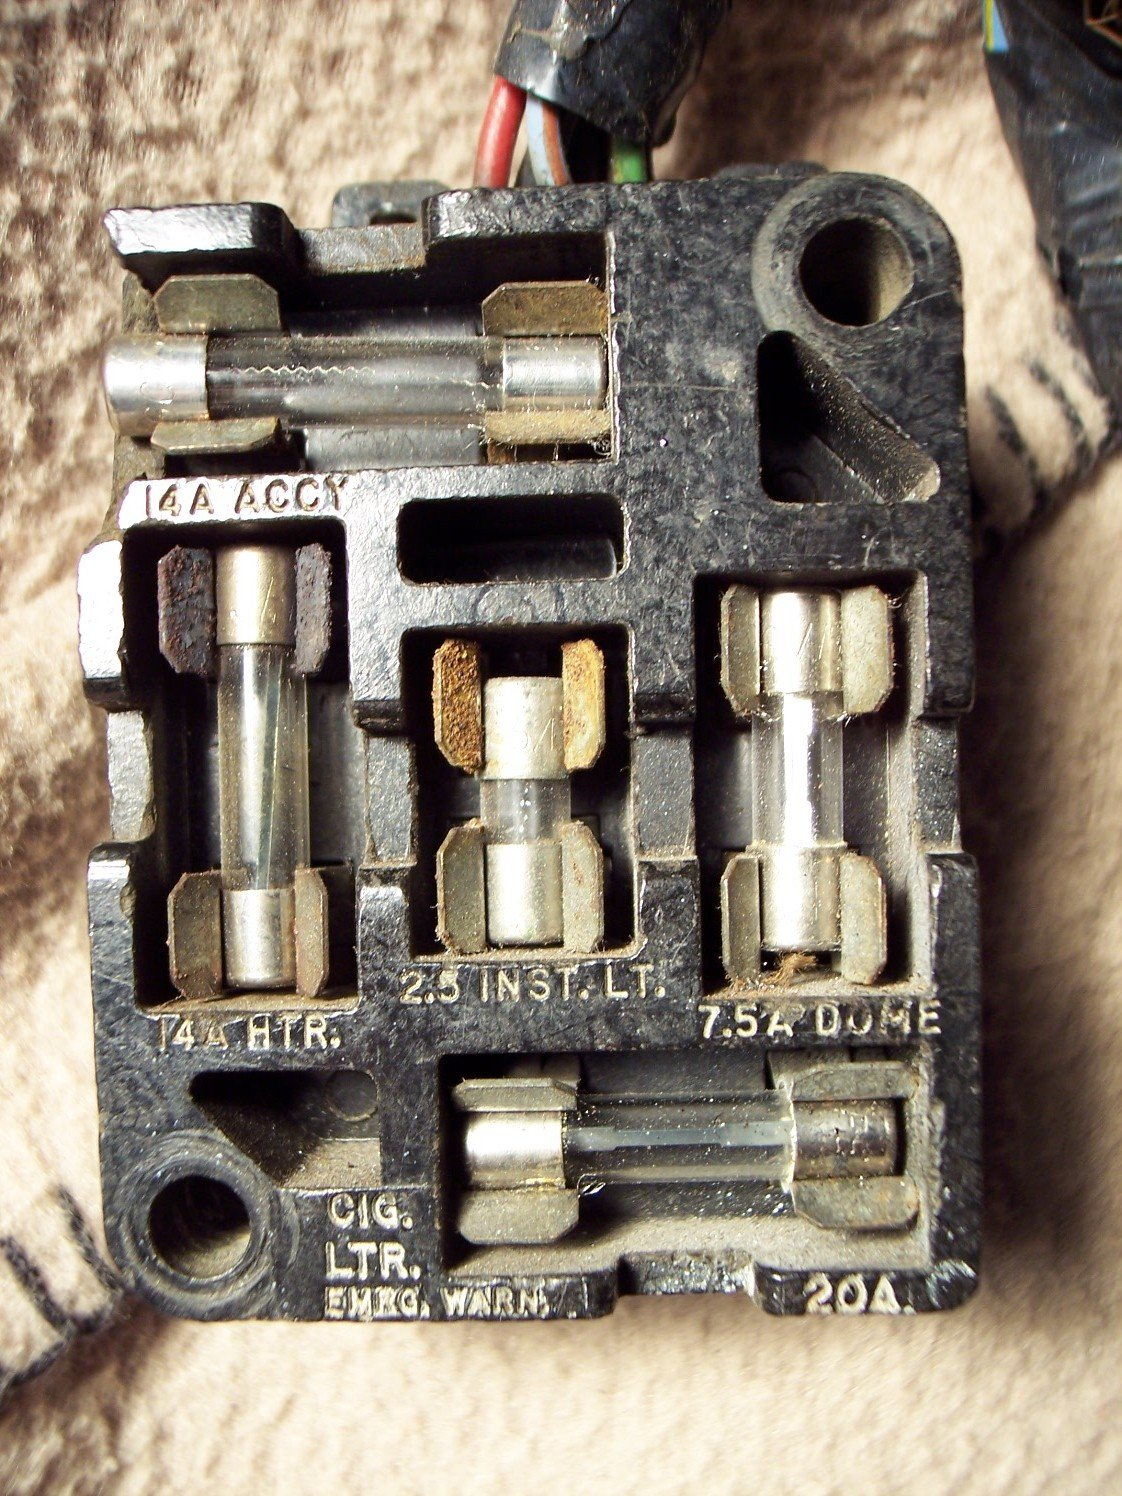 [WQZT_9871]  1965 Mustang fuse panel / fuse box diagram? | Ford Mustang Forum | 1966 Mustang Fuse Box Wiring |  | All Ford Mustangs